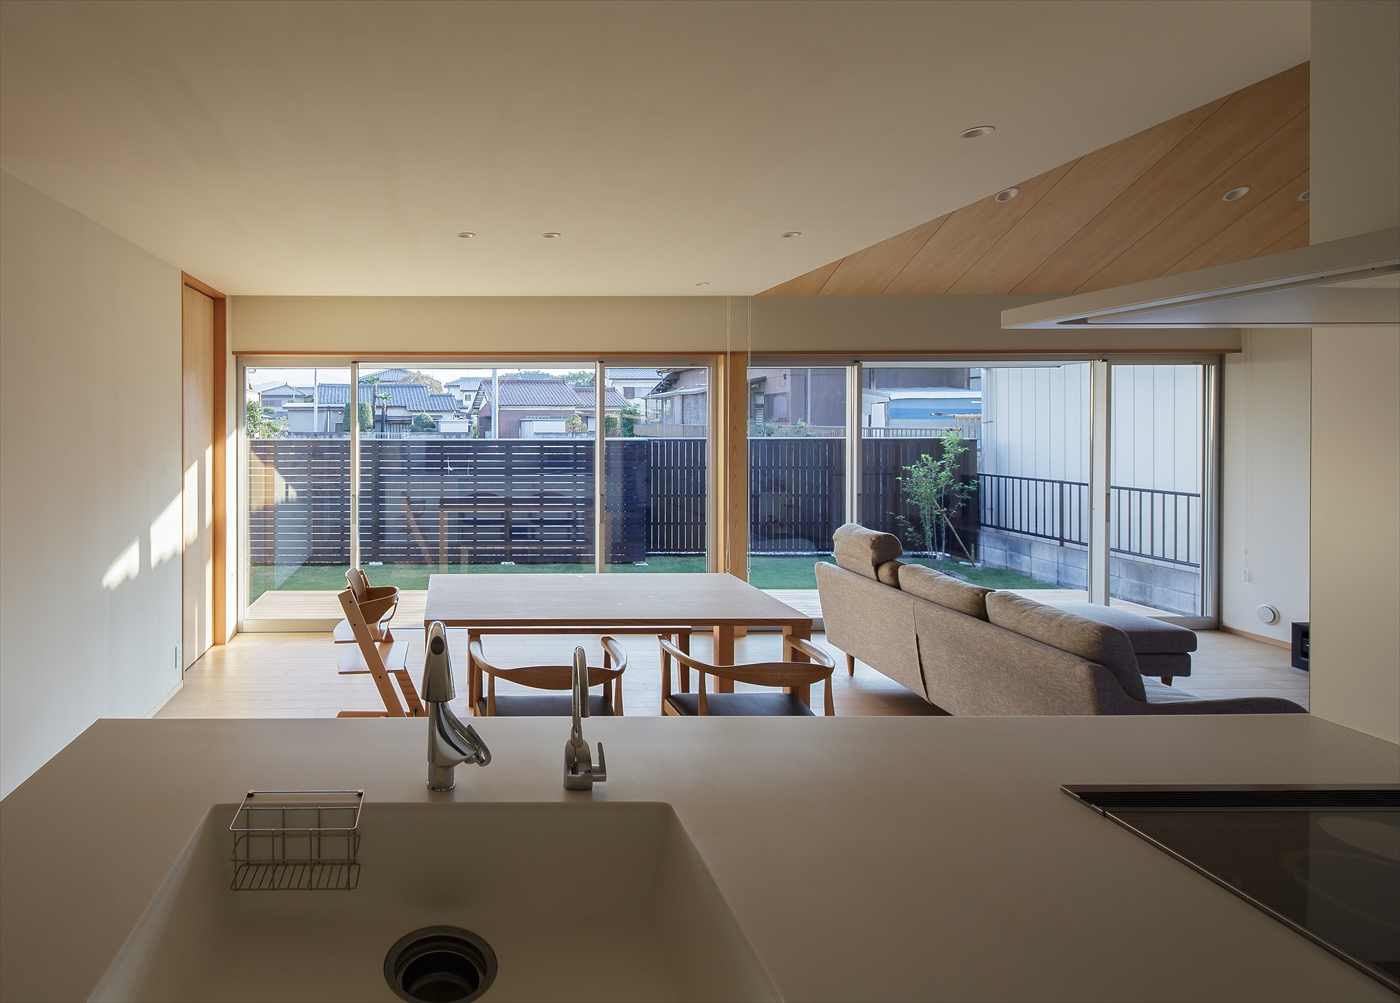 Architecture: House Yorii located in Saitama Prefecture, Japan